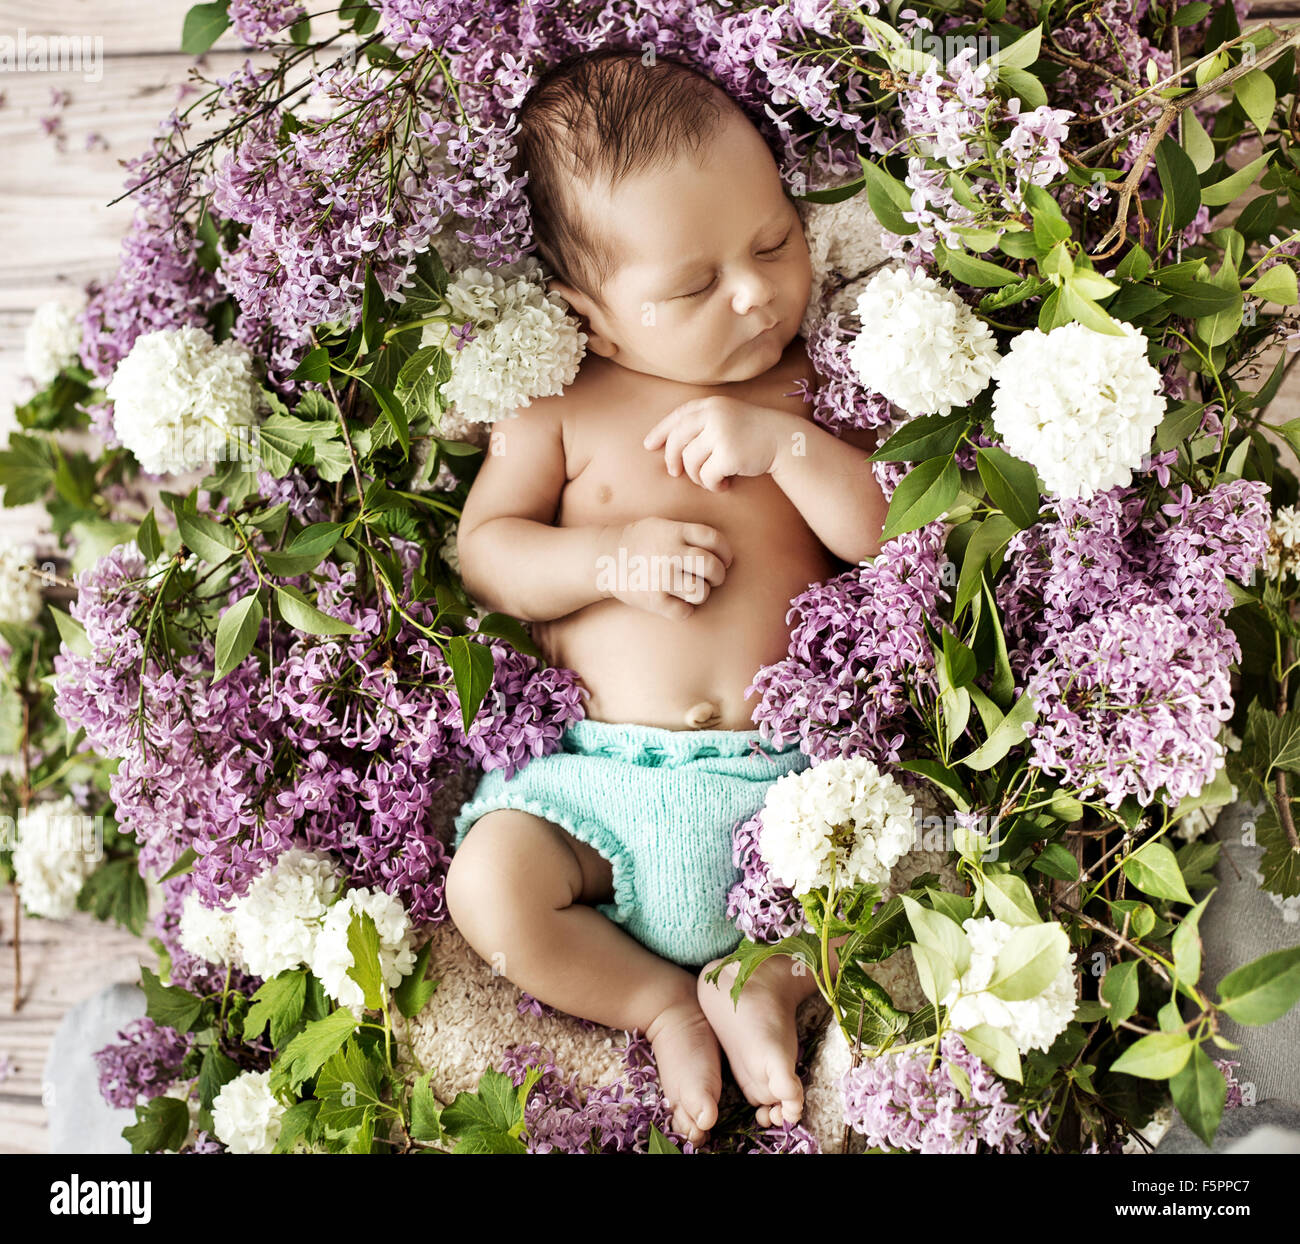 Cute baby sleeping on the chaplet - Stock Image